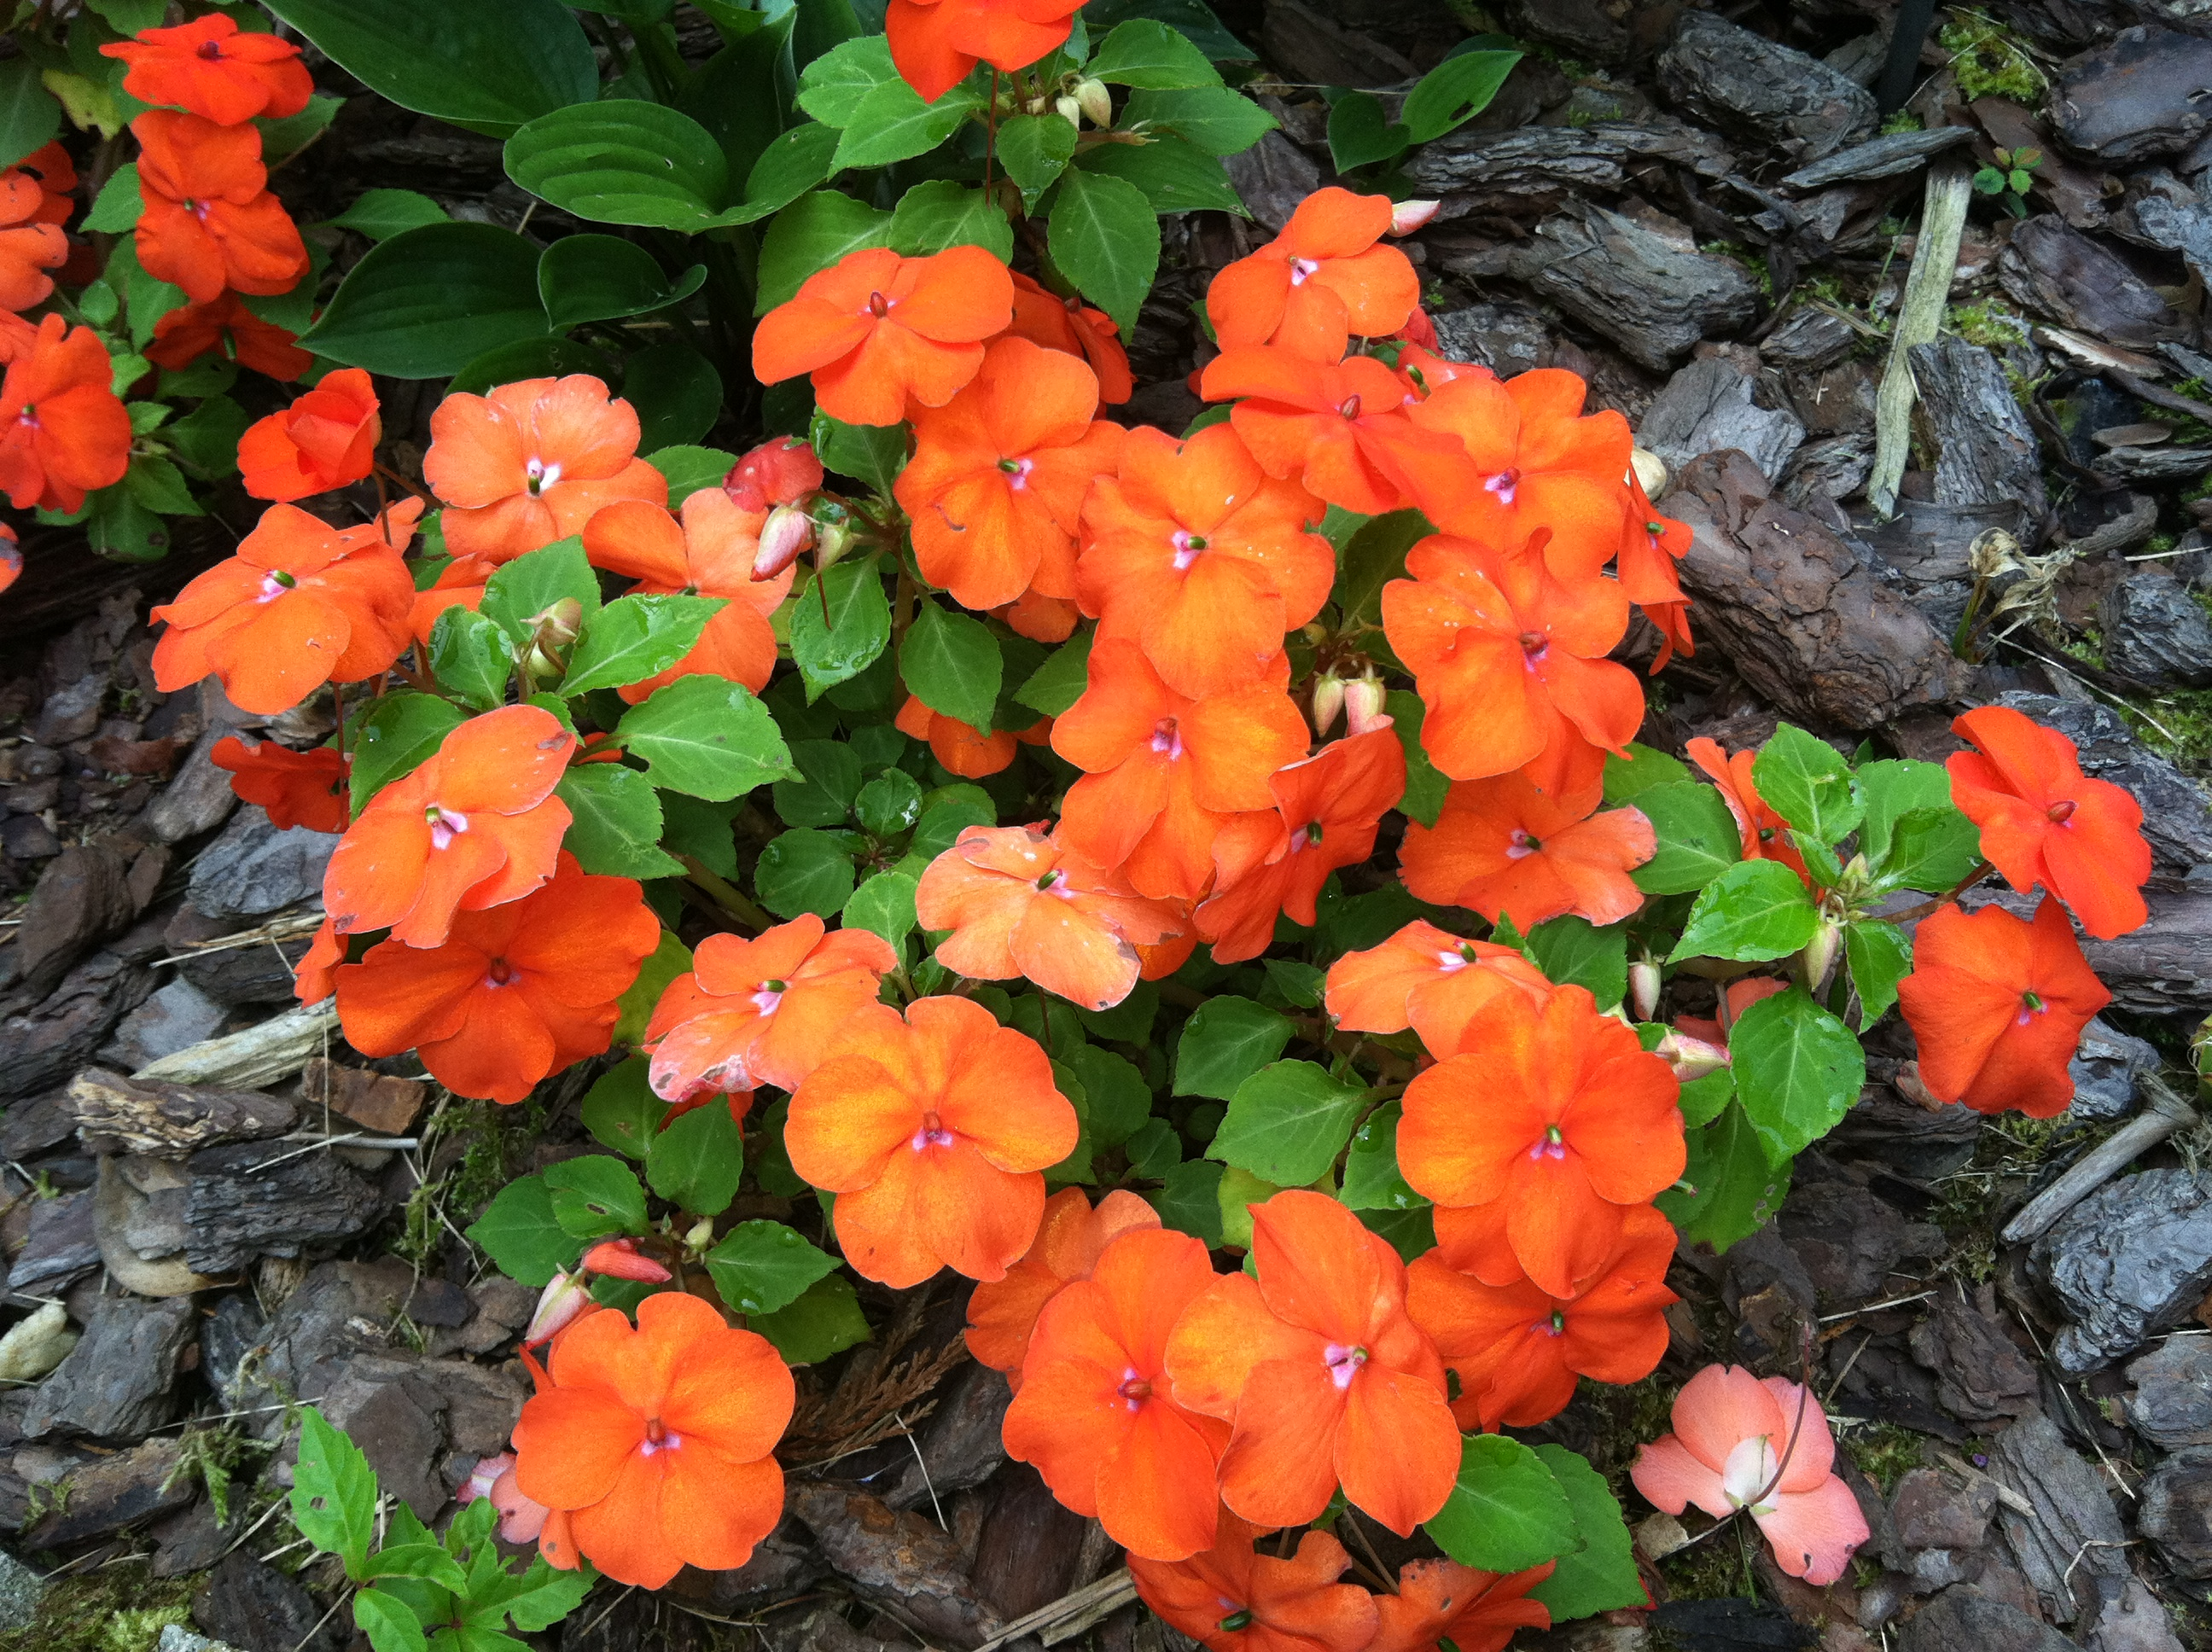 Peach Impatiens beginner gardener how to garden